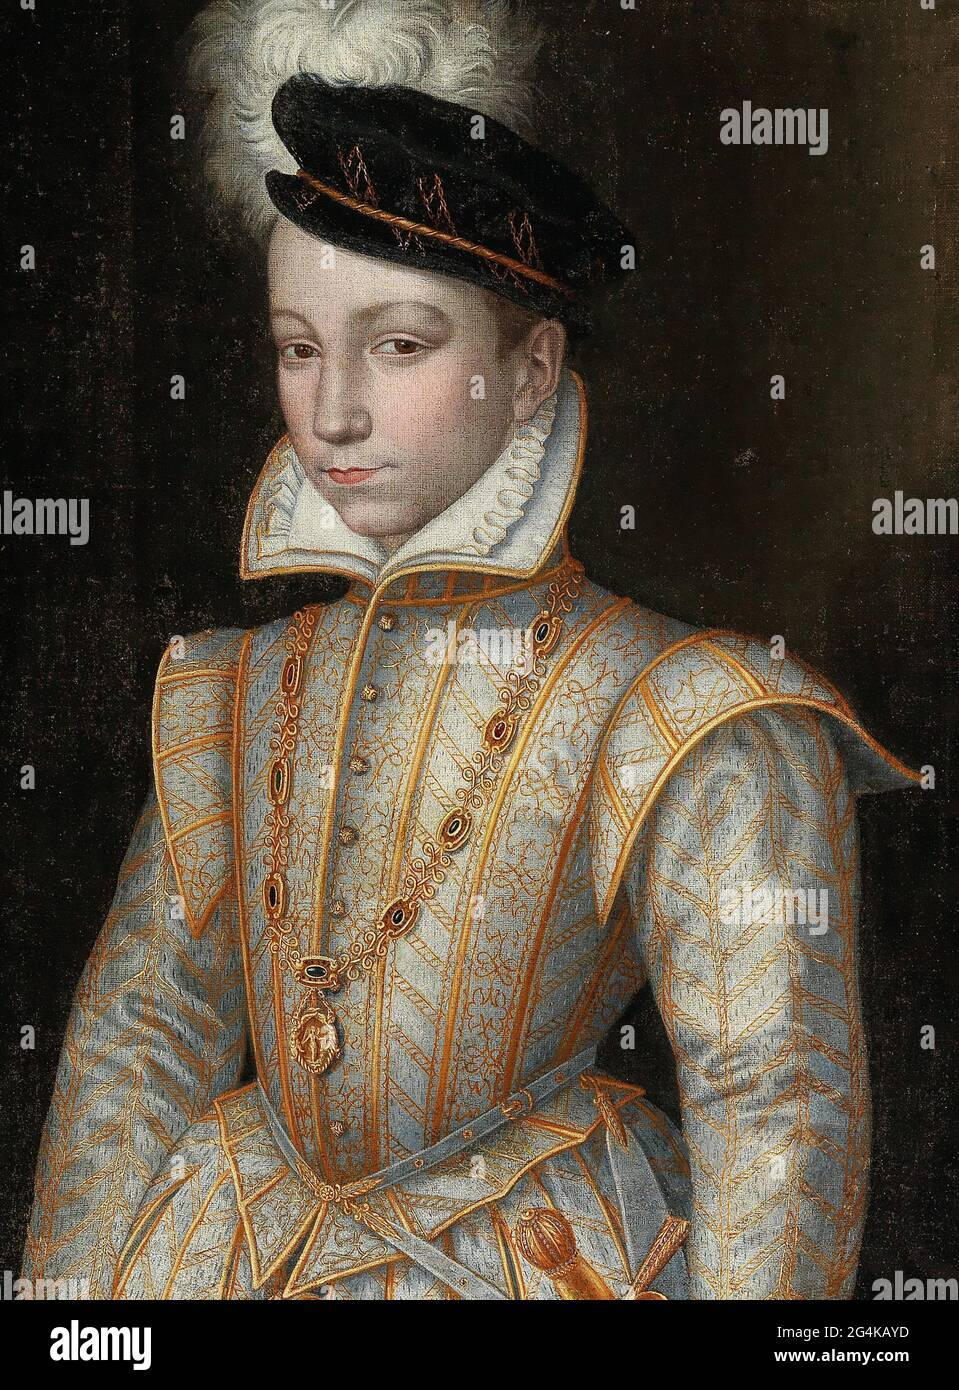 Portrait of King Charles IX of France (1550-1574), c. 1560. Private Collection. Stock Photo